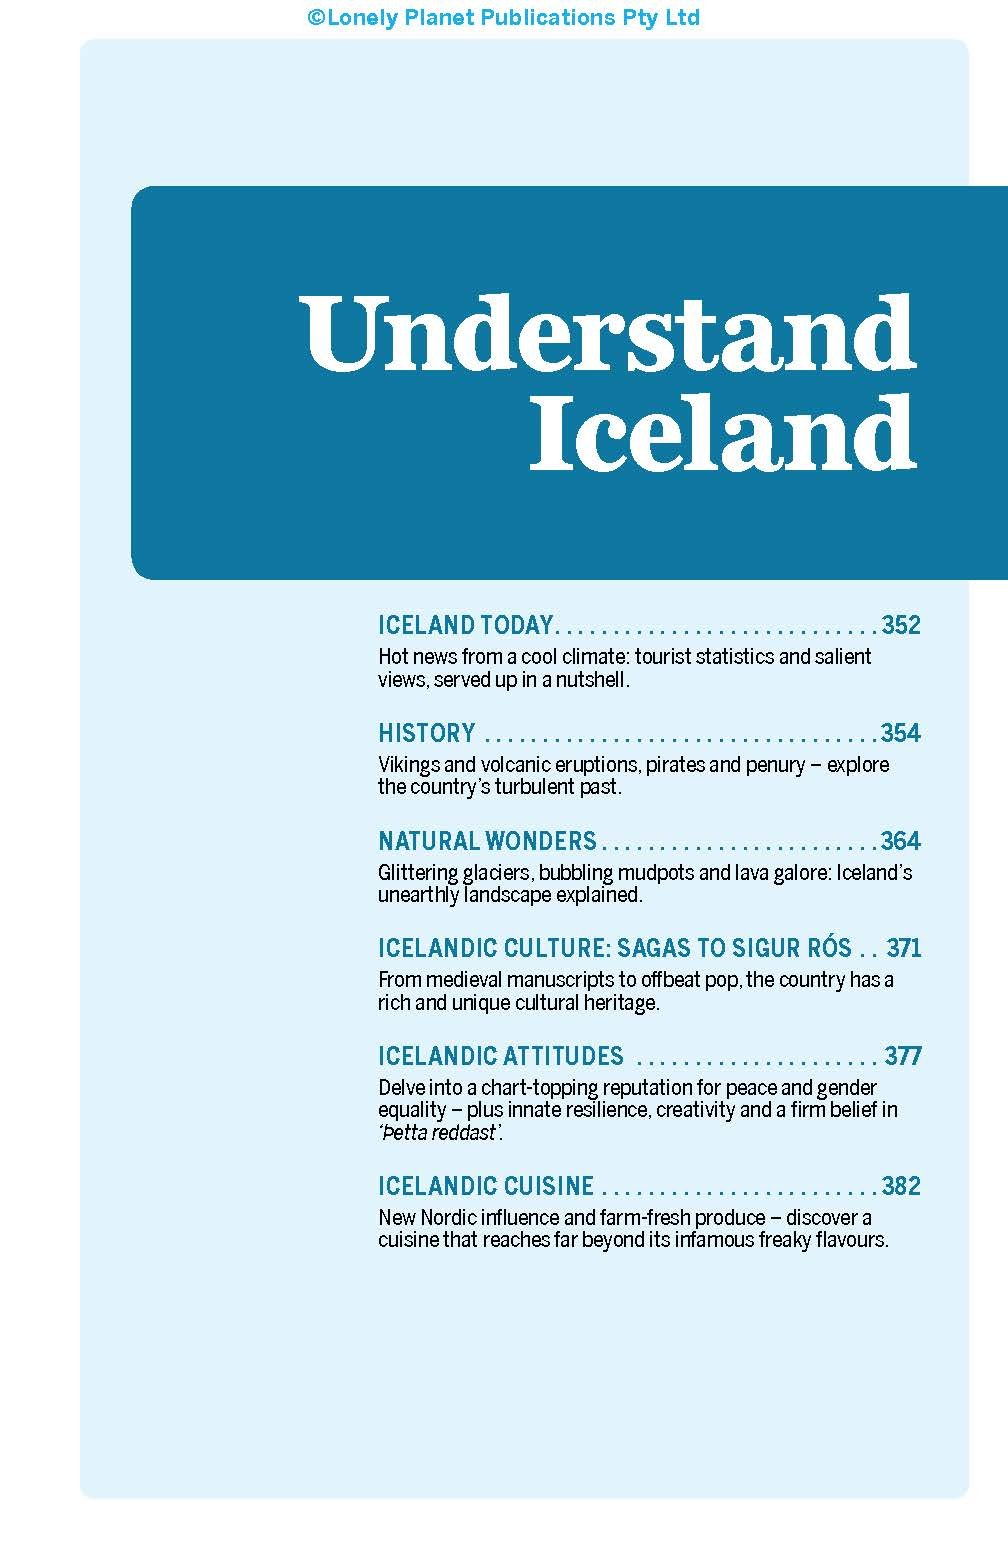 Buy lonely planet iceland travel guide book online at low prices buy lonely planet iceland travel guide book online at low prices in india lonely planet iceland travel guide reviews ratings amazon nvjuhfo Choice Image